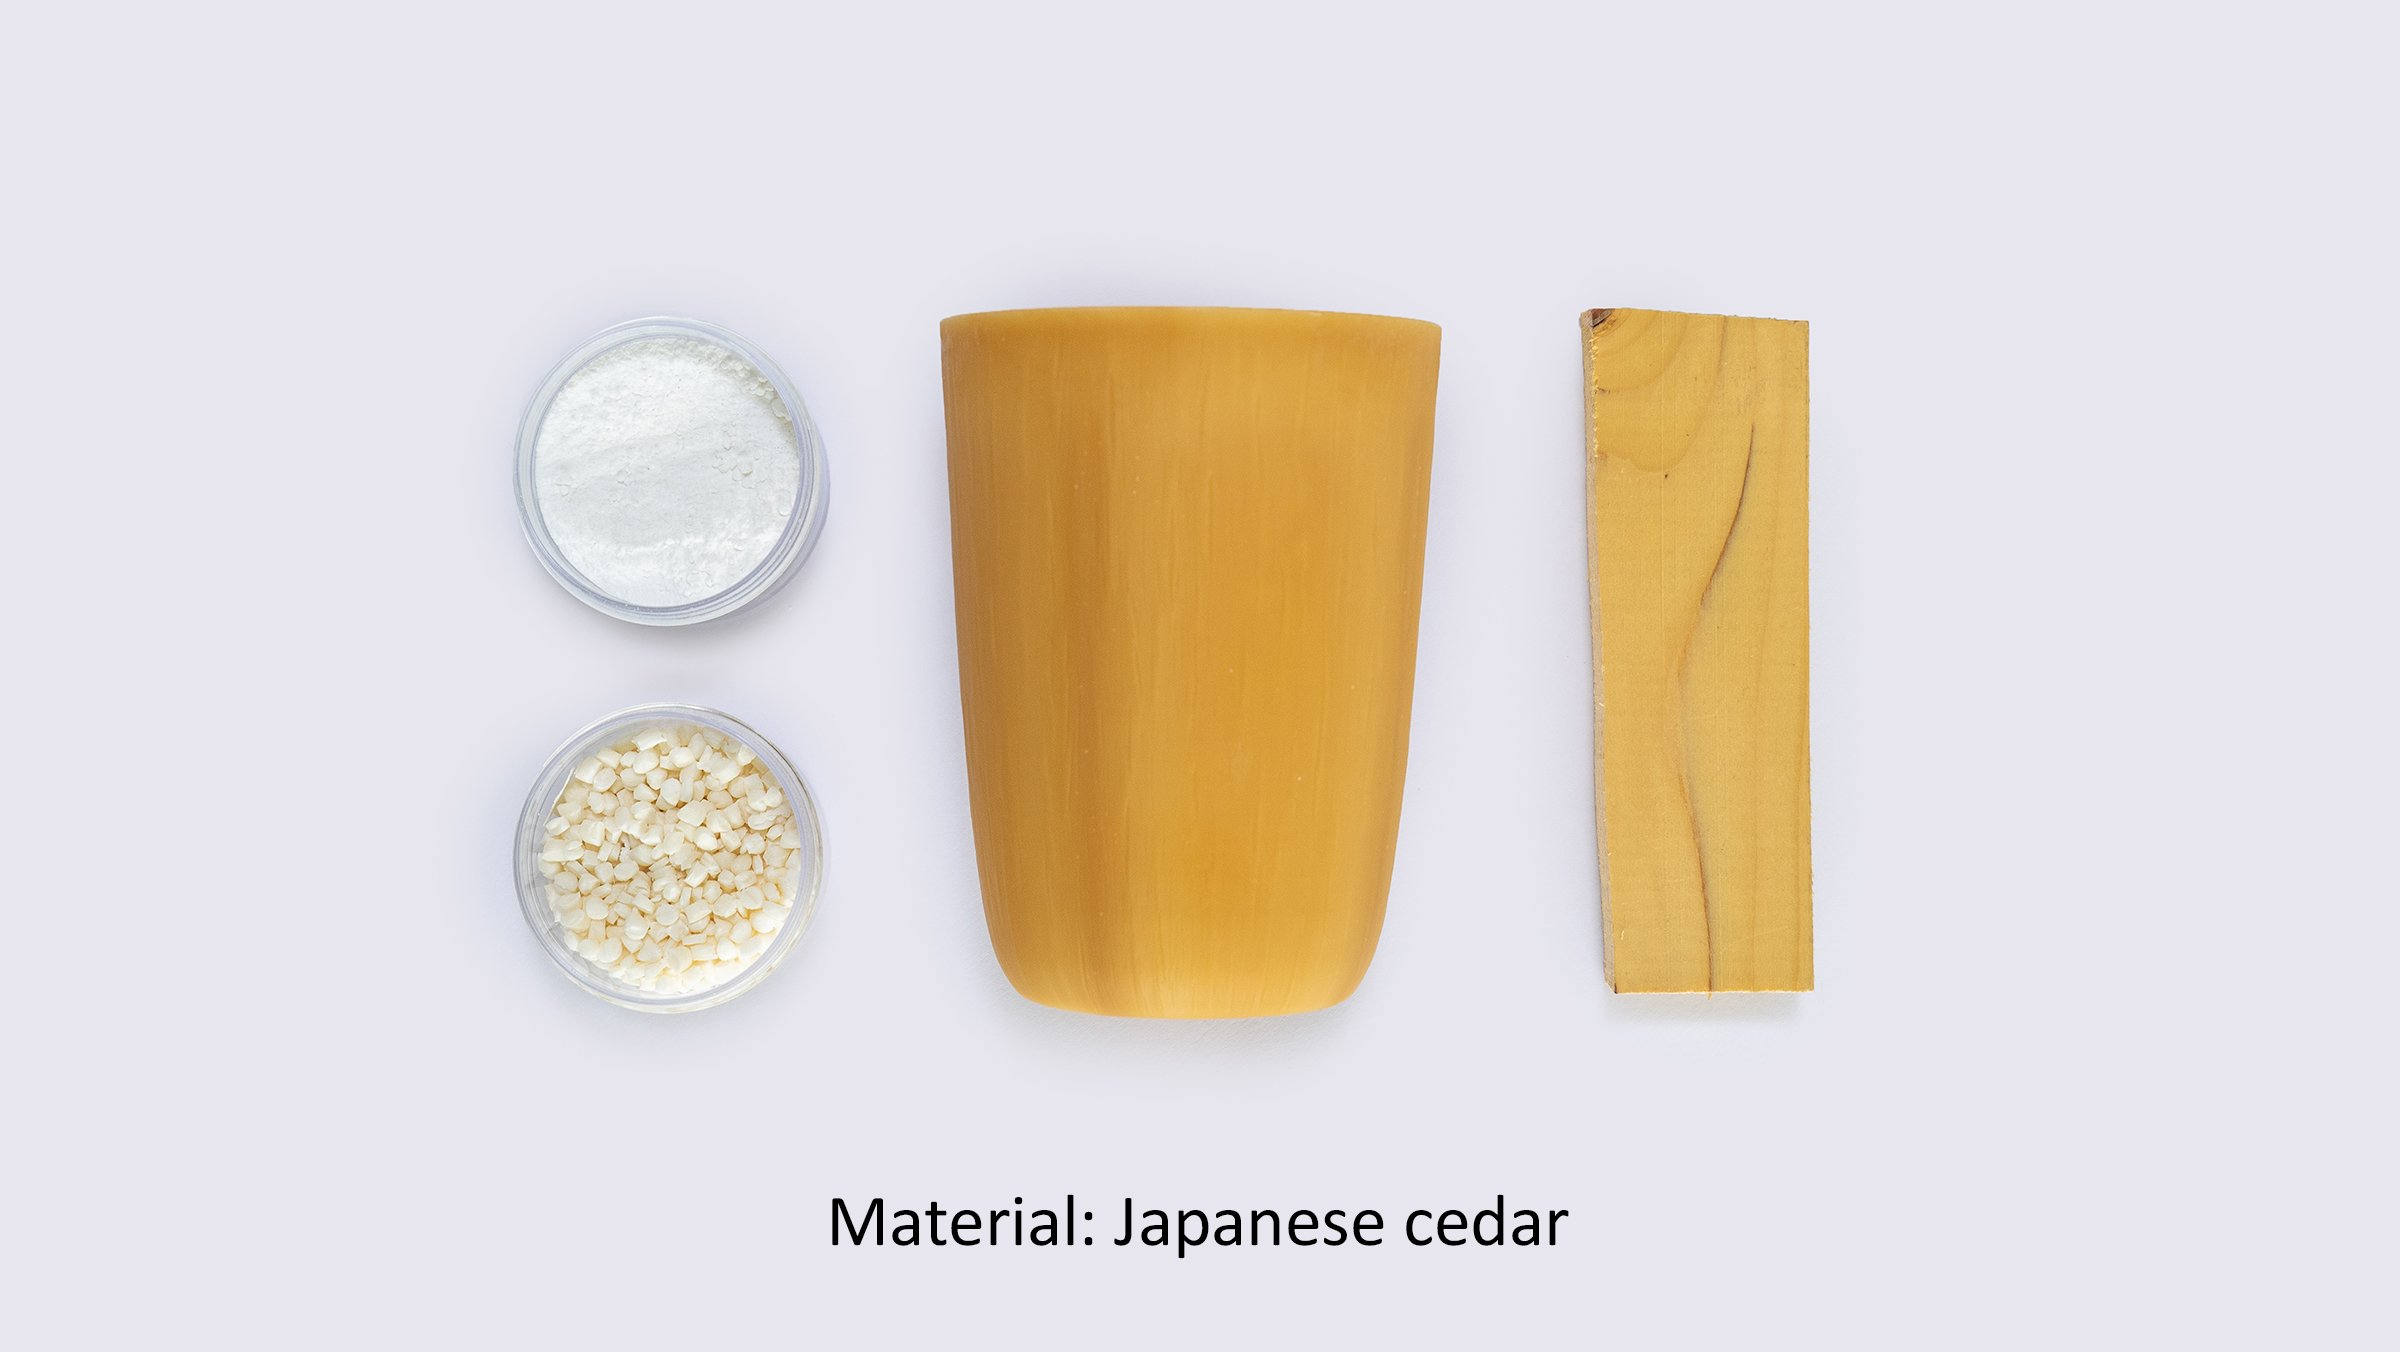 Photo: Reusable cups using cellulose fiber (material: Japanese cedar).